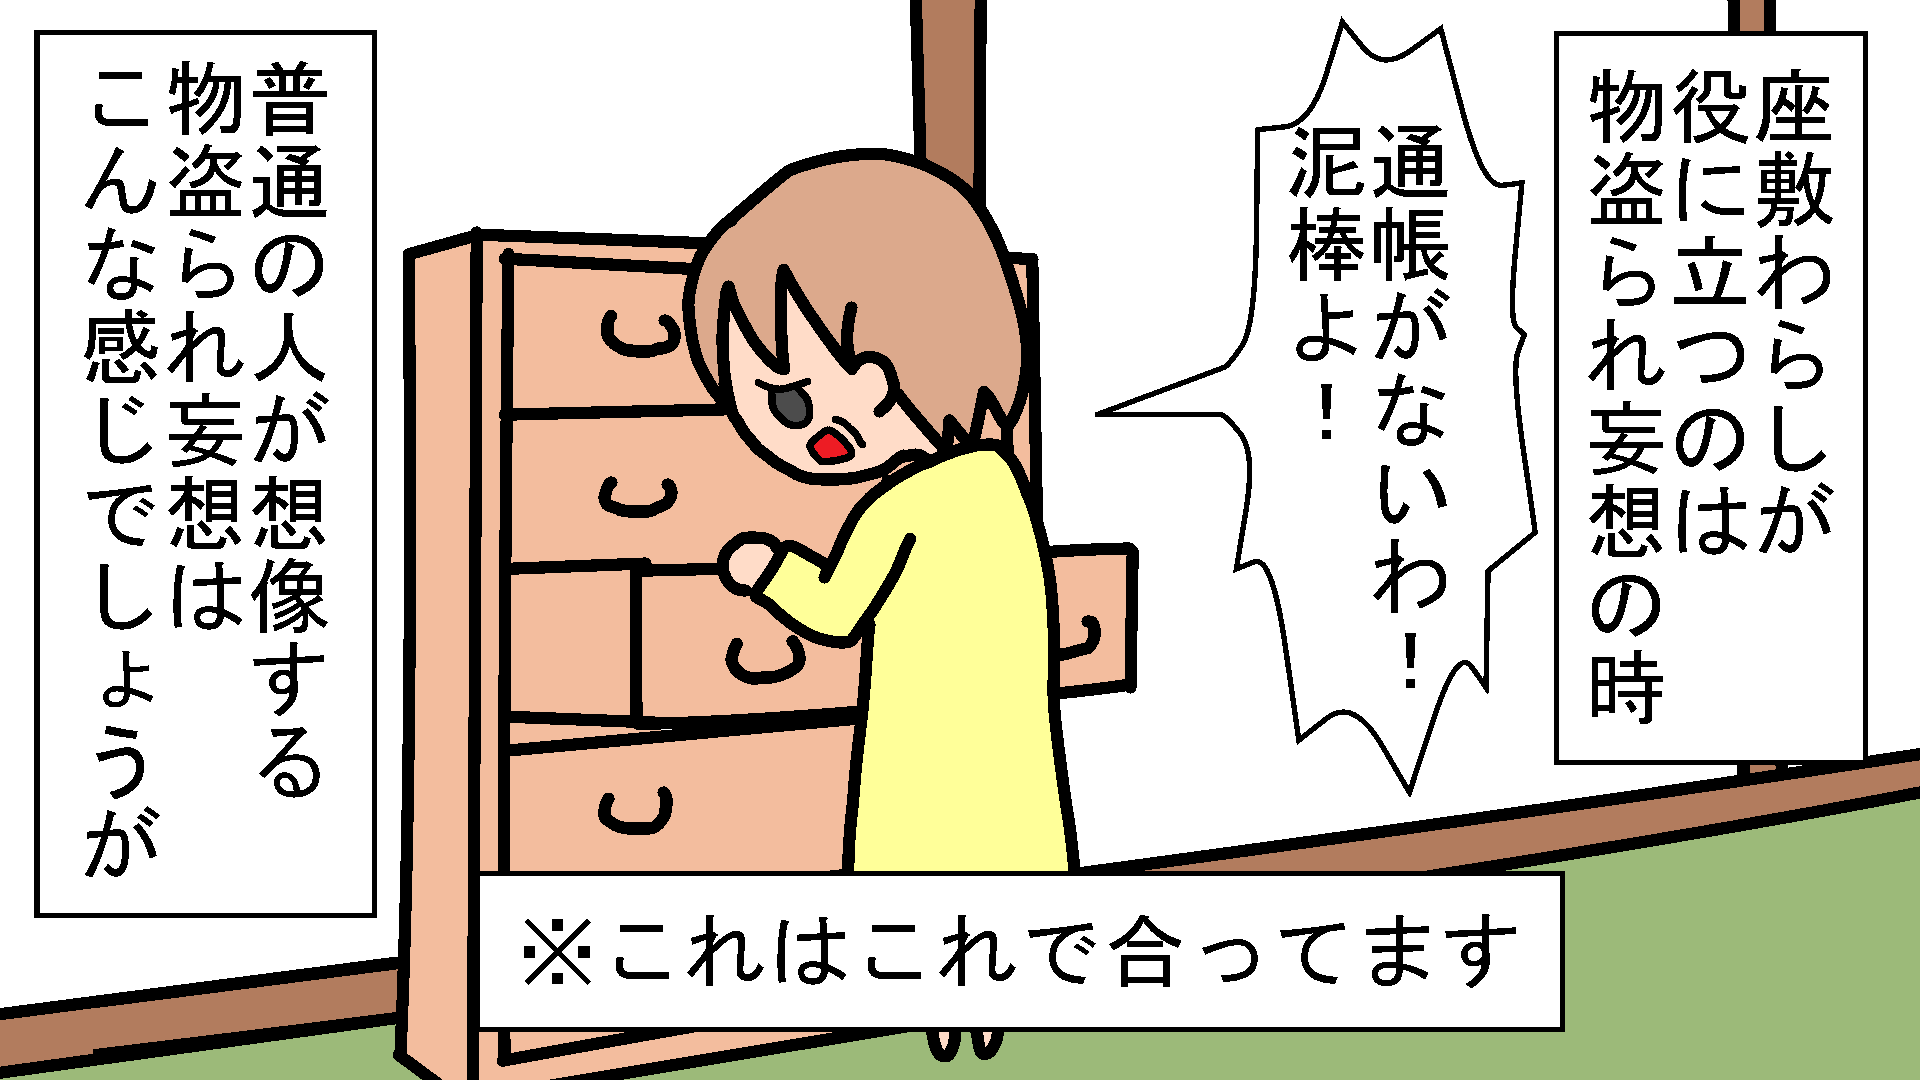 youtubeの挿絵(座敷わらし)_a0040621_20143202.png